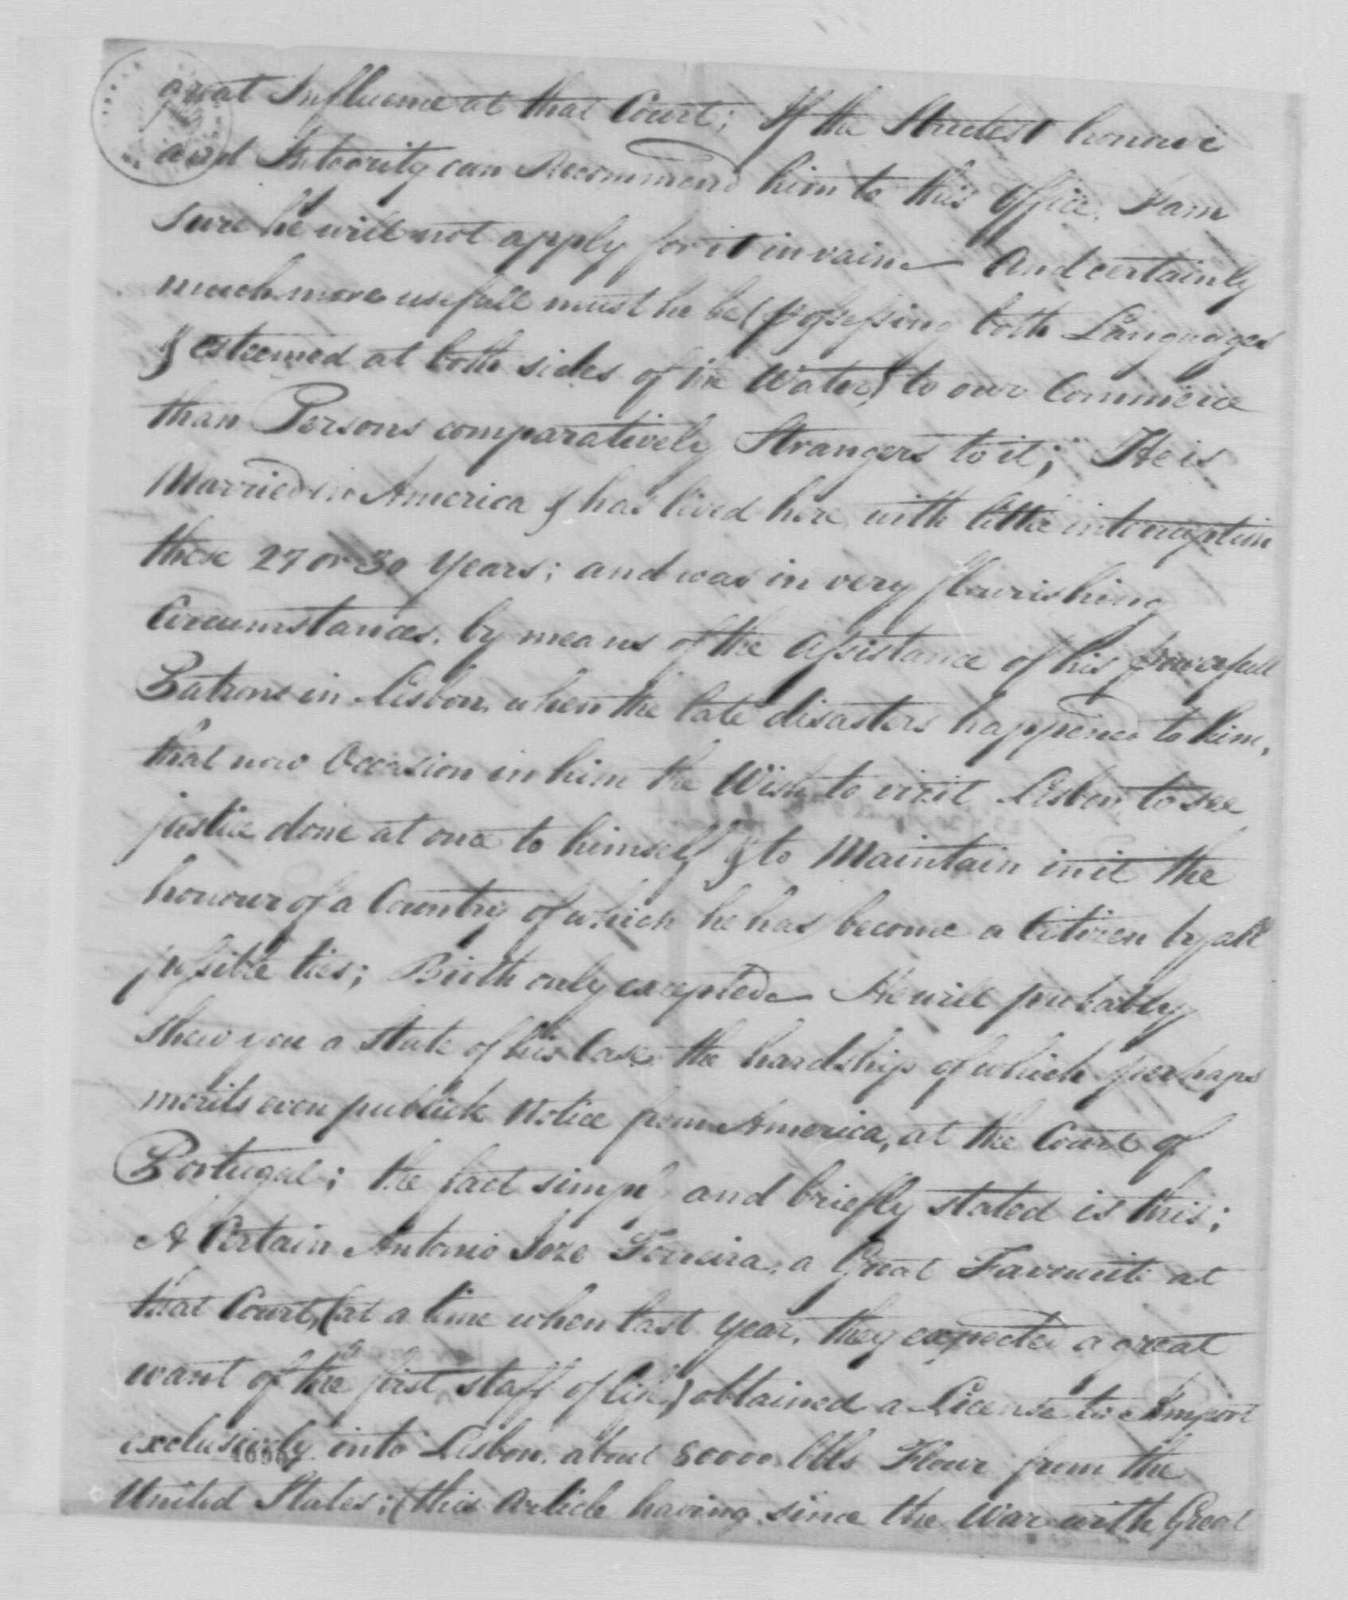 George Washington Papers, Series 7, Applications for Office, 1789-1796: John Swanwick